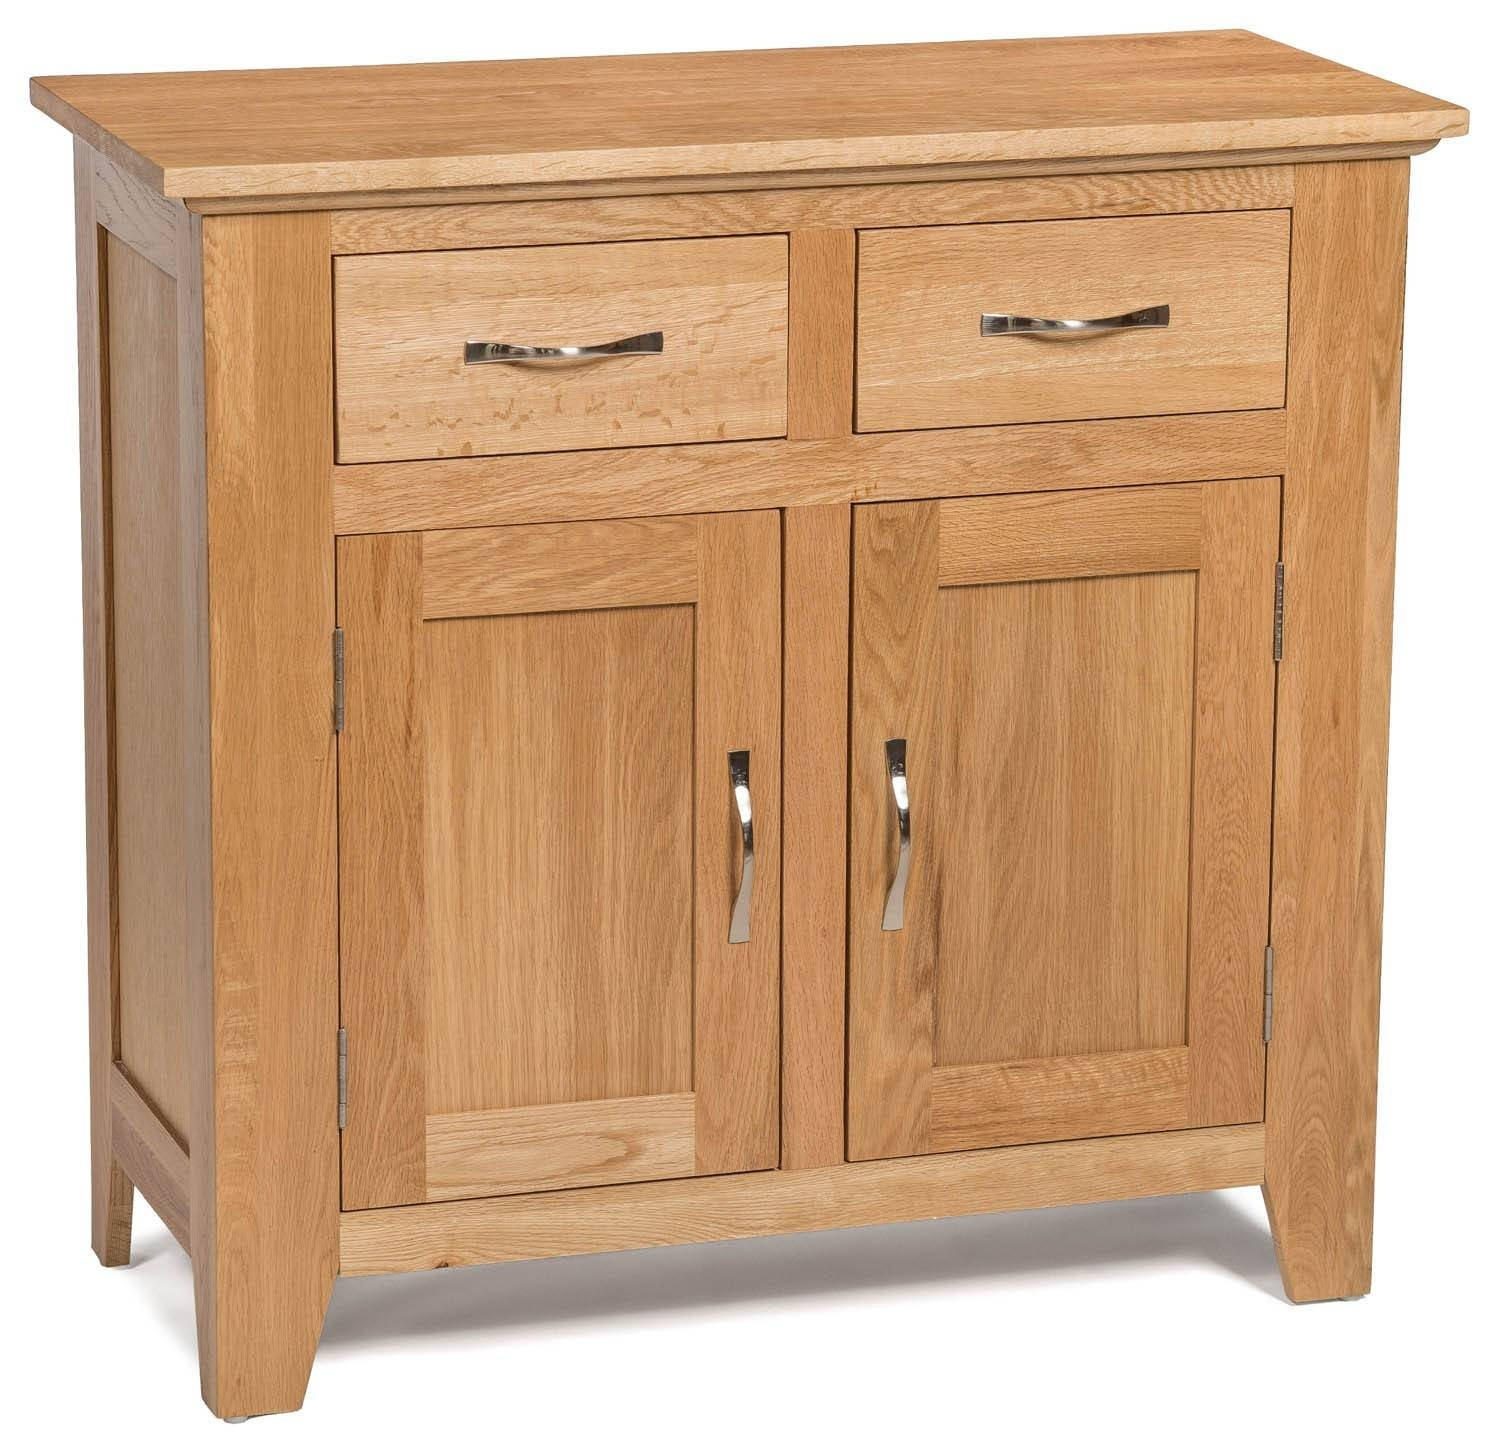 Camberley Oak Small 2 Door 2 Drawer Sideboard - Sideboards & Tops intended for Small Sideboard Cabinets (Image 4 of 30)